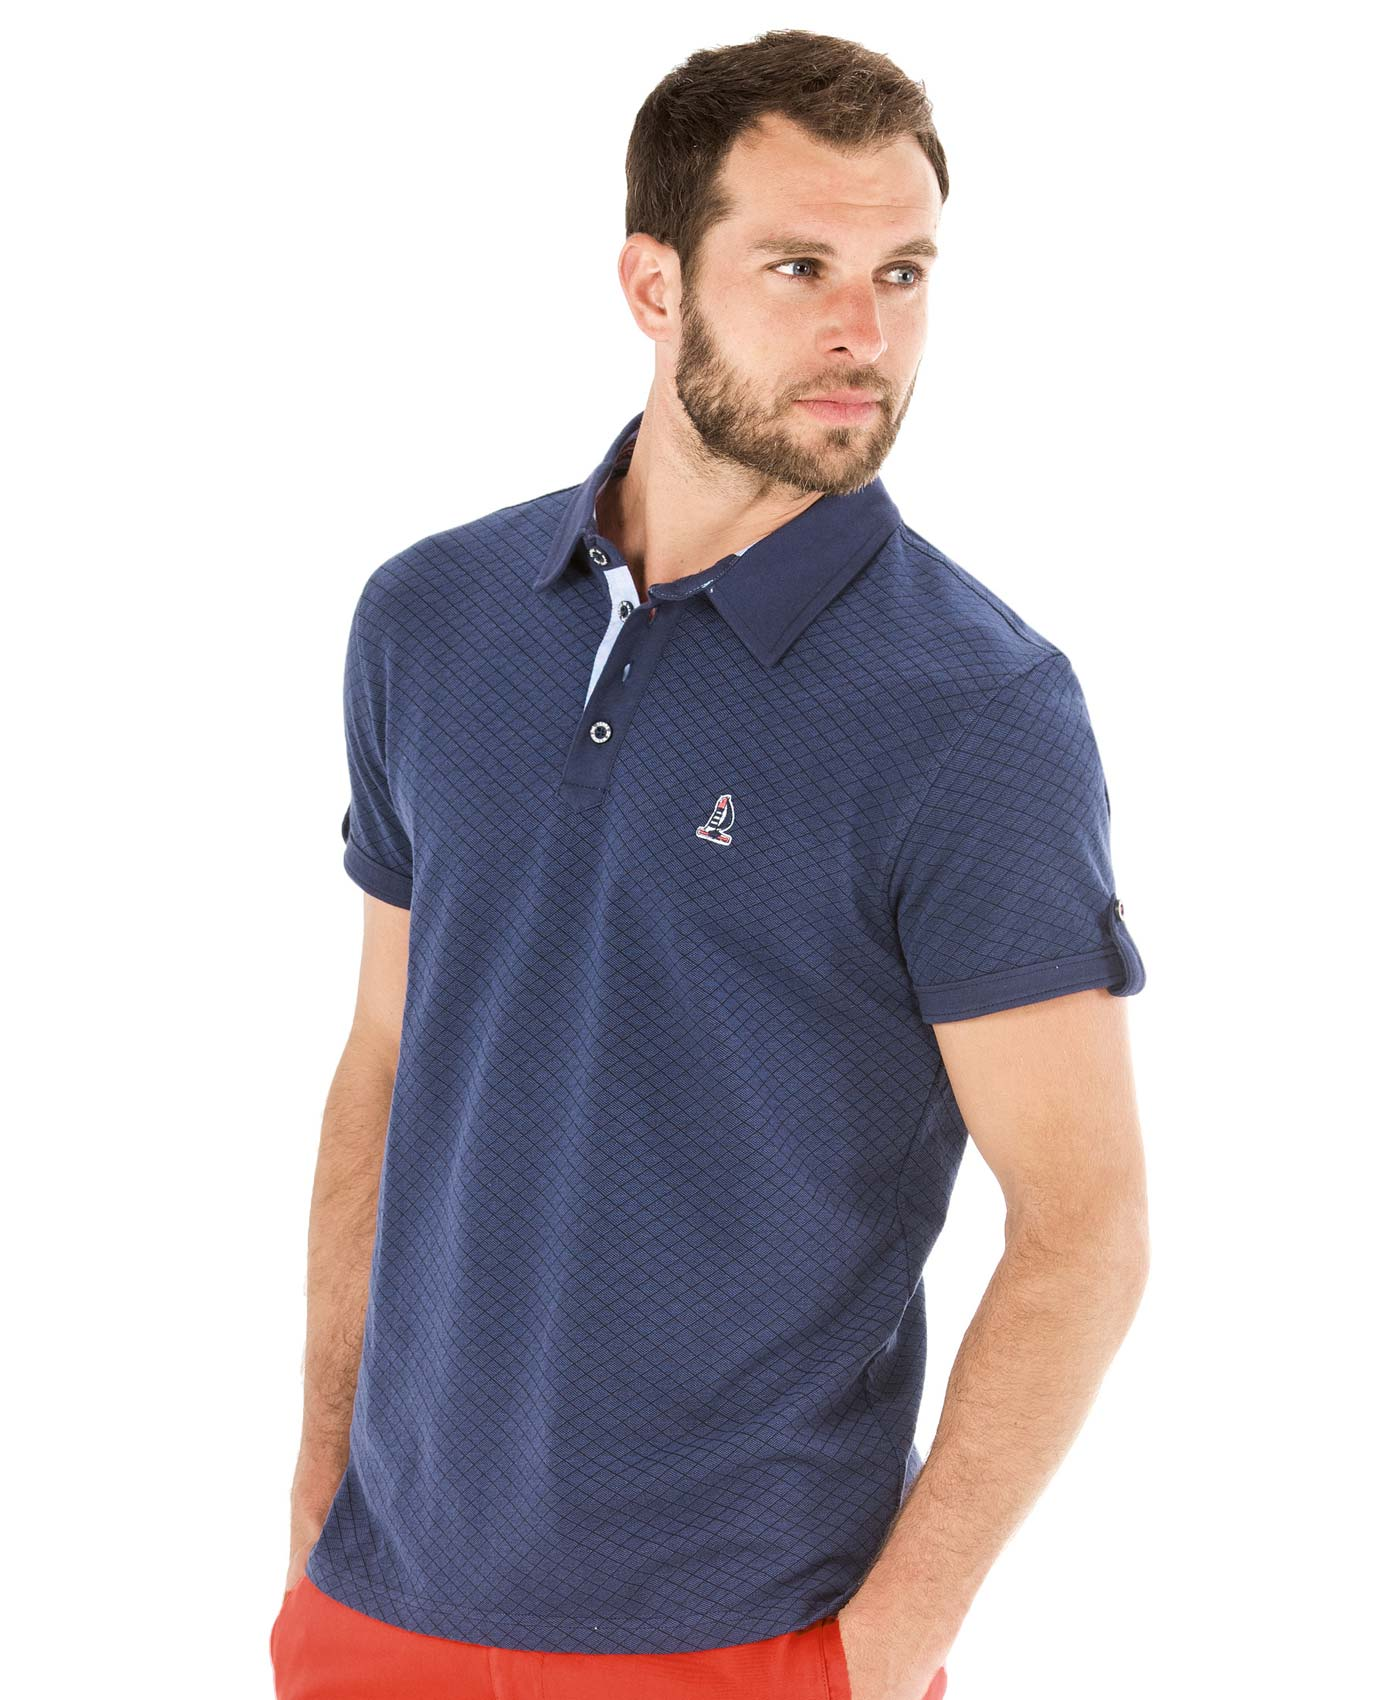 Polo manches courtes homme jacquard - Mode marine Homme